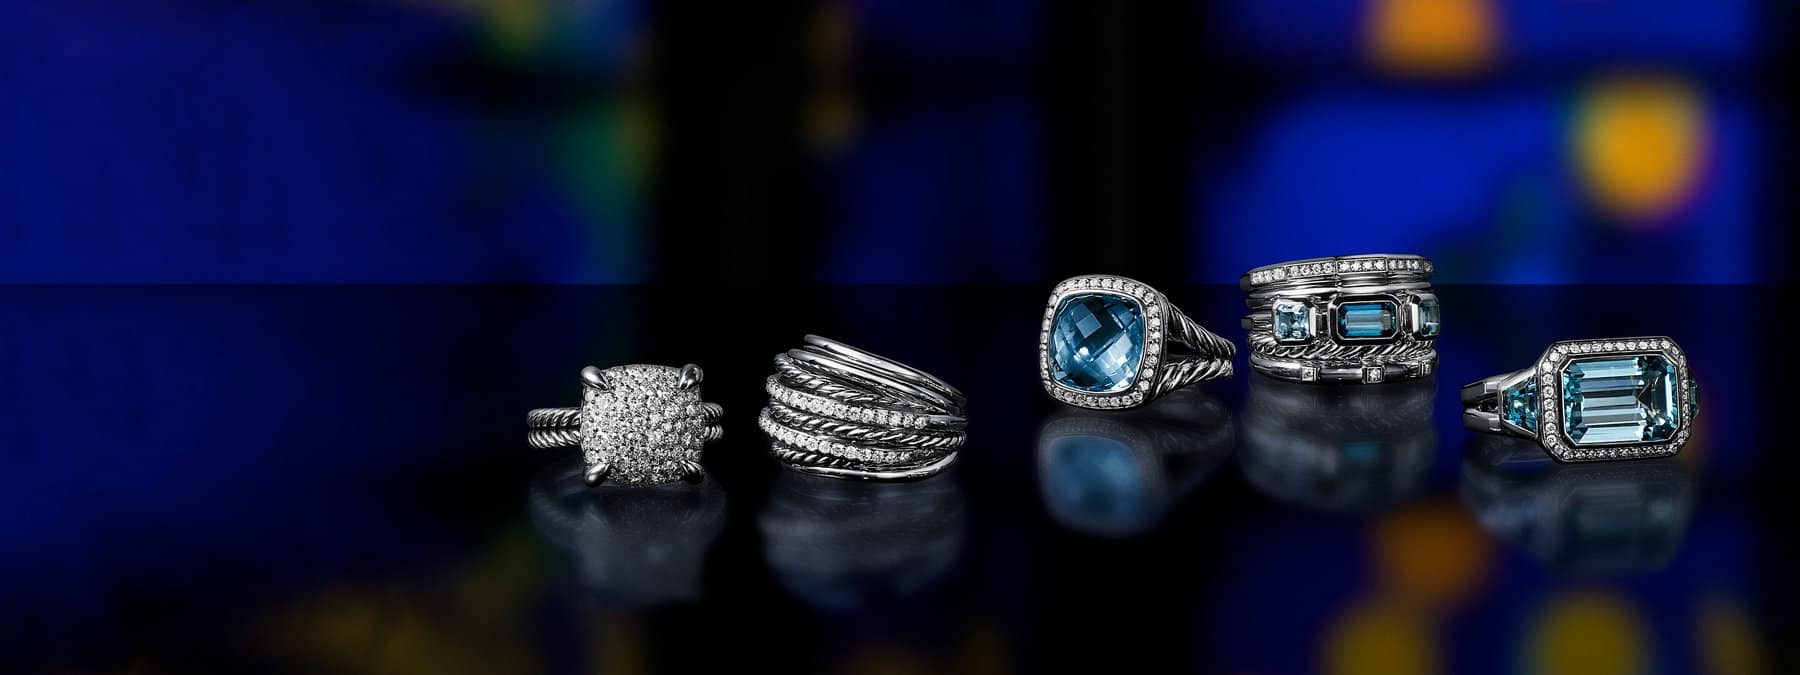 A color photograph shows five David Yurman rings from the Châtelaine, Crossover, Albion, Stax and Novella collections scattered on a black reflective surface with a colorful stained glass panel illuminated behind them. The women's rings are crafted from sterling silver with pavé diamonds and with or without blue topazes.